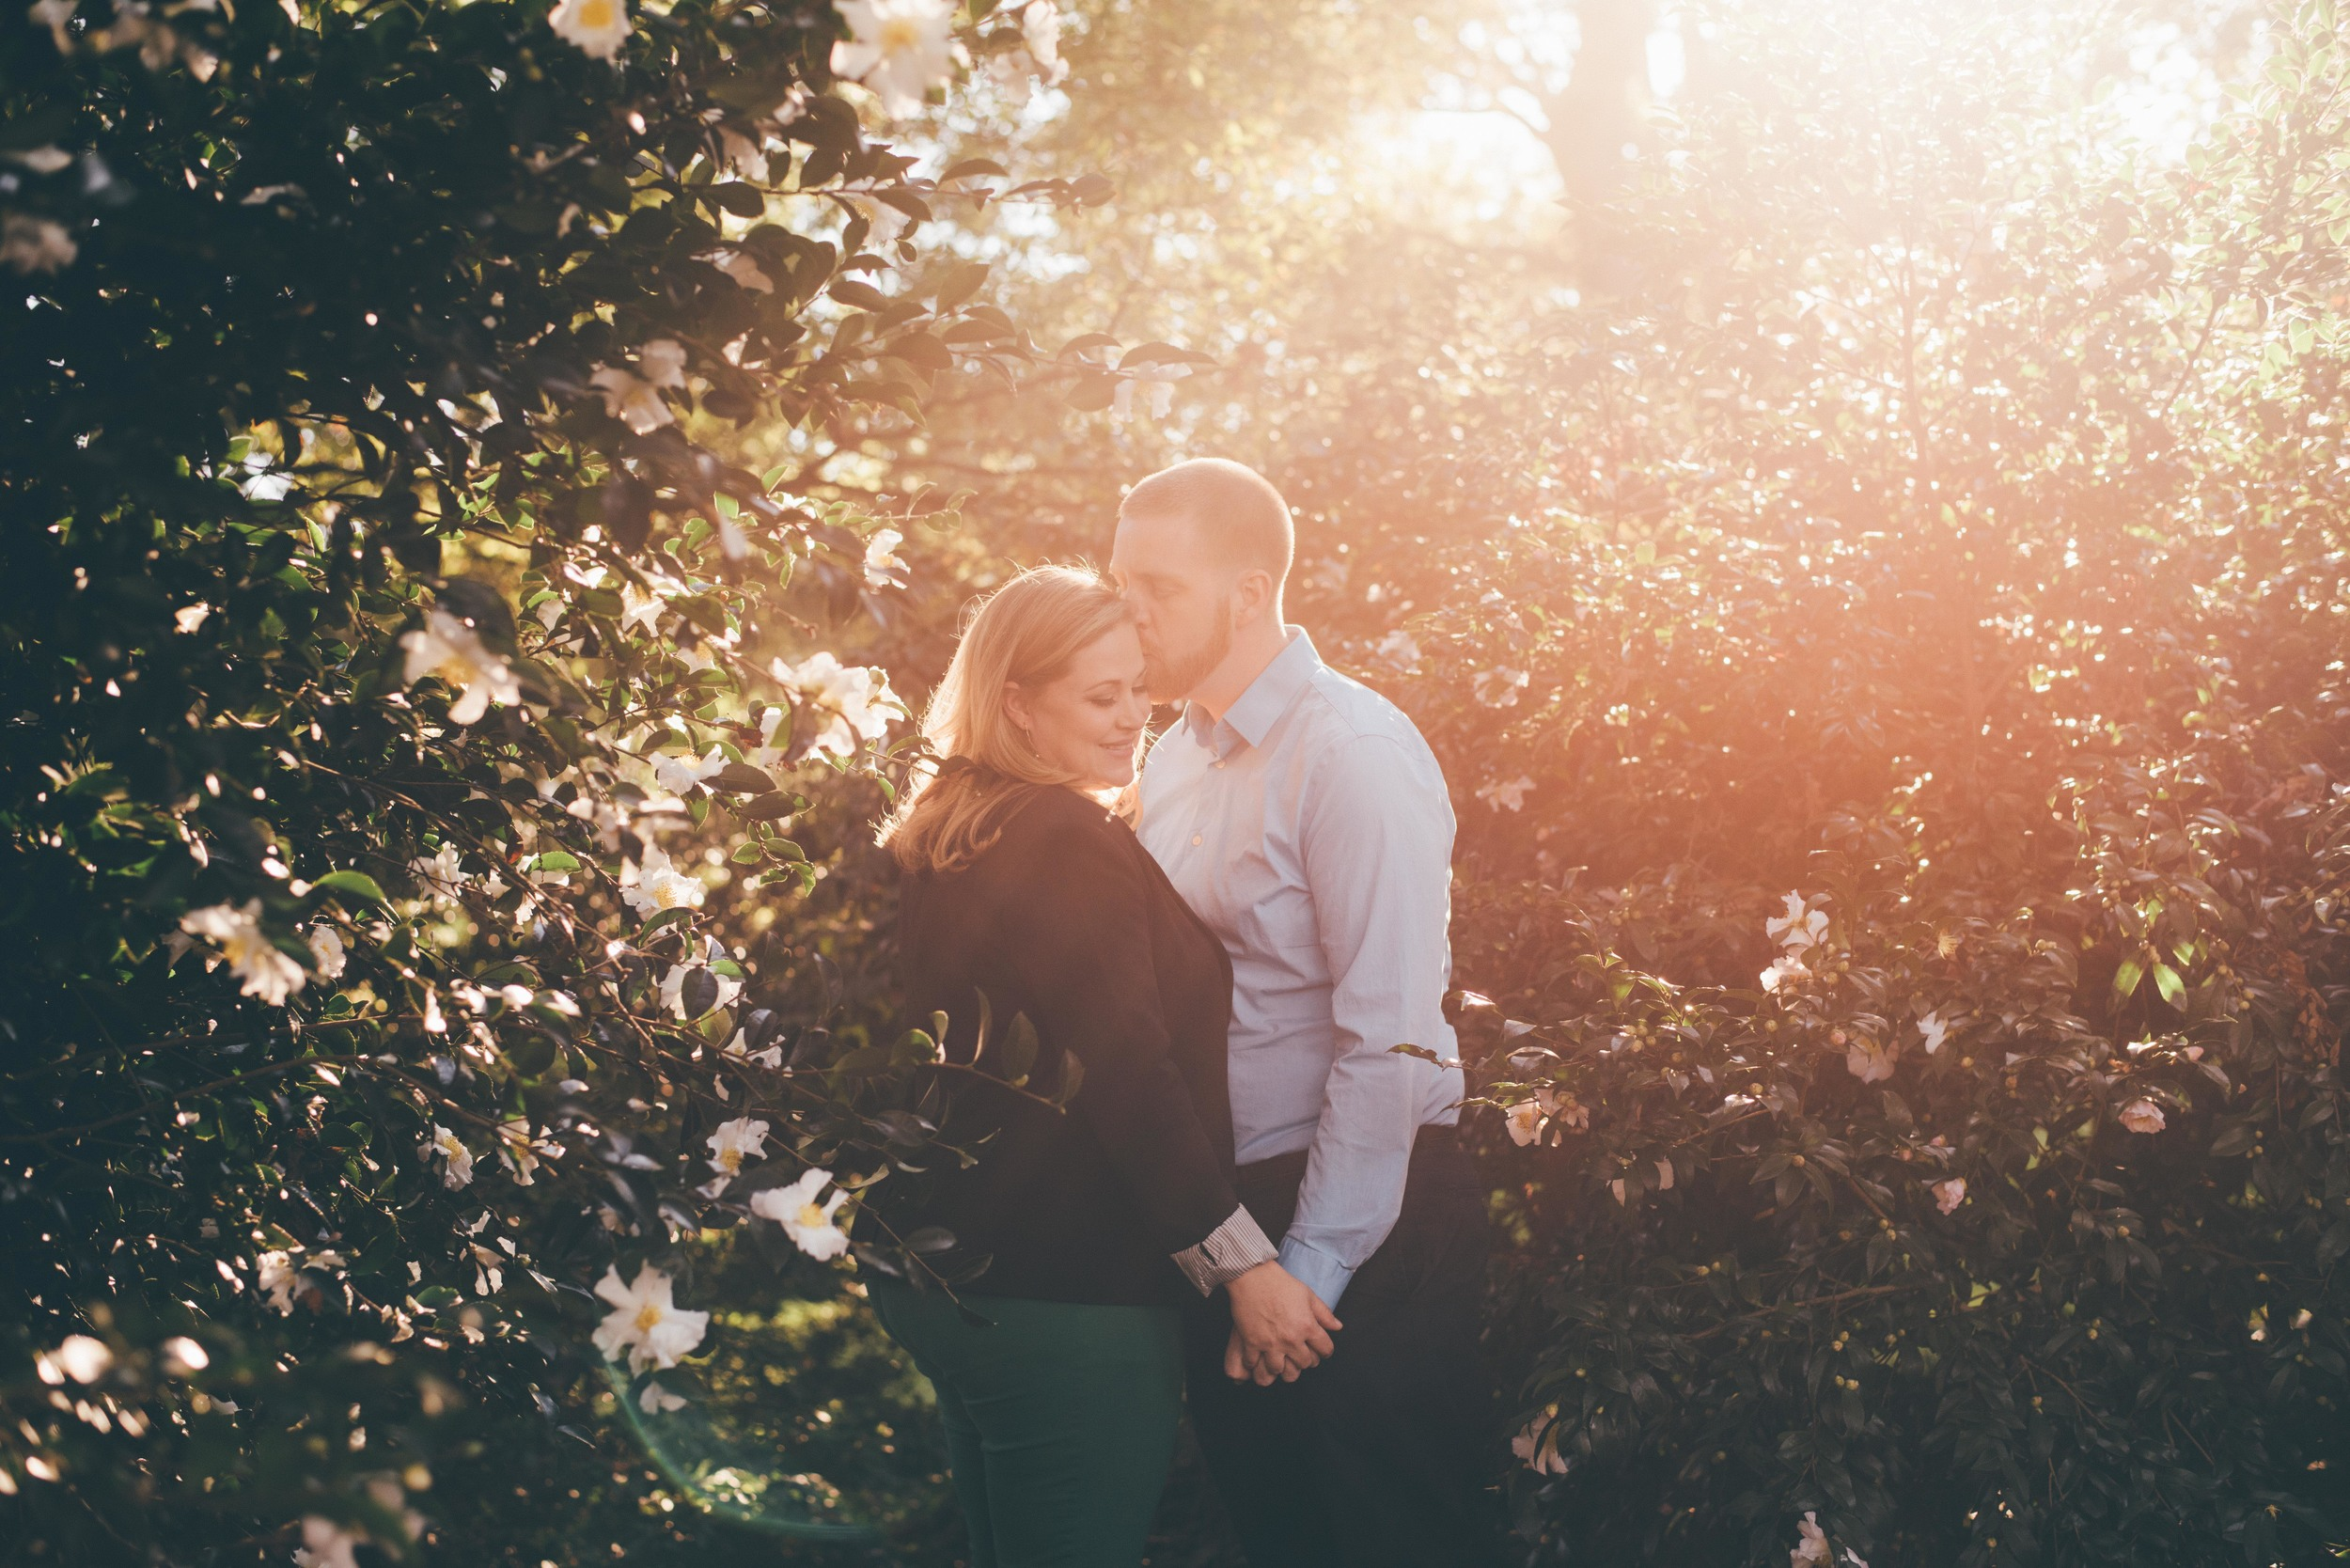 Megan and David celebrate their love during their Fall engagement session. The two are to get married on March 12th, 2016. Photography by Griffin Hart Davis, LLC